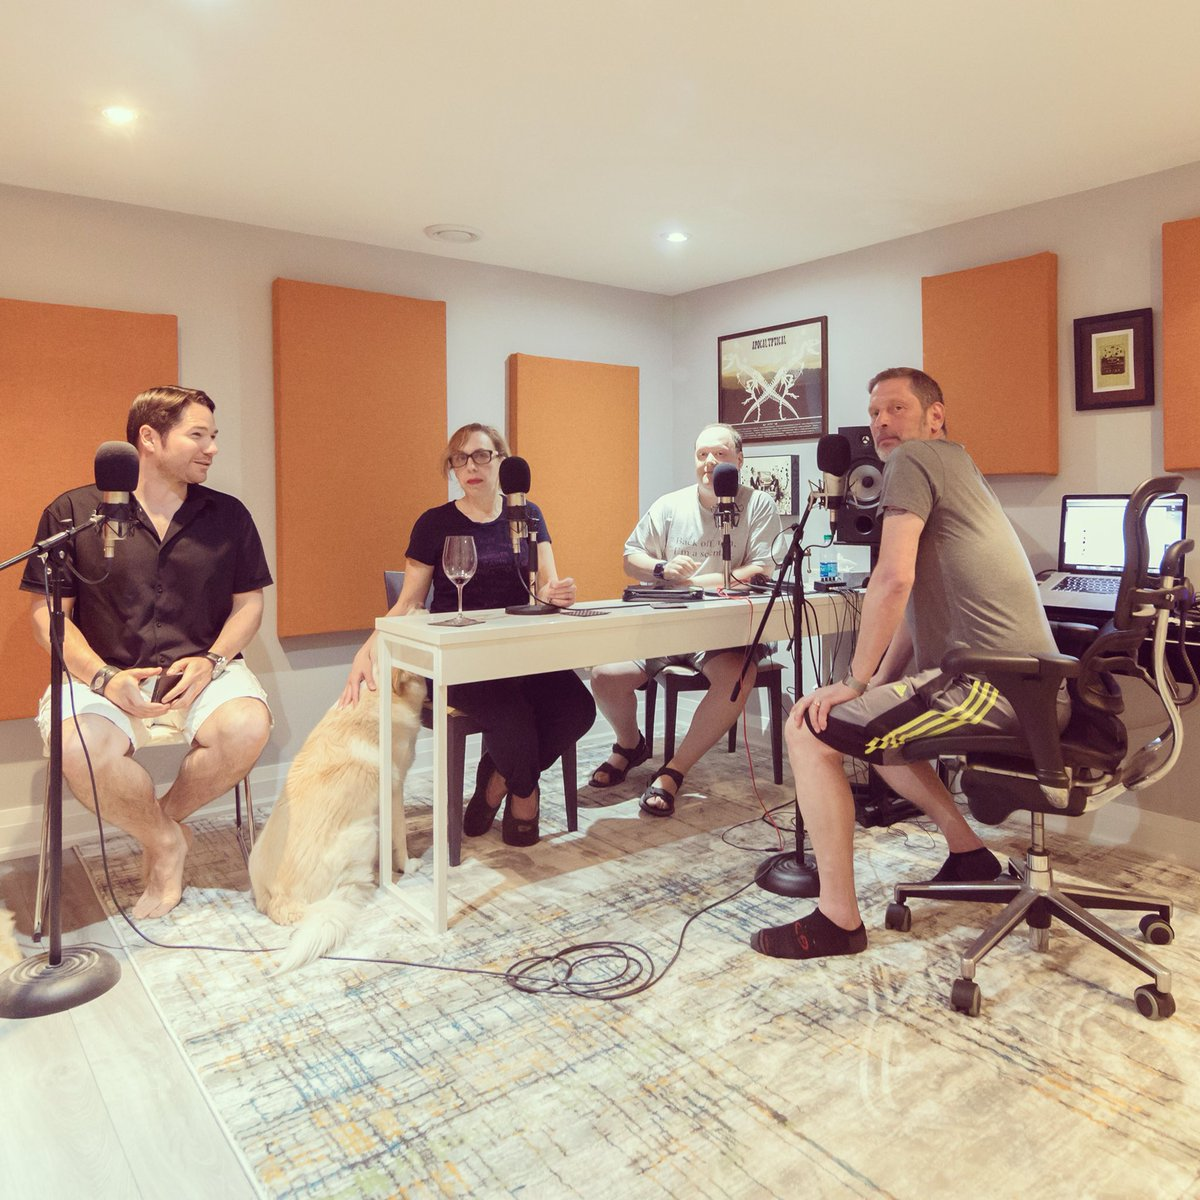 Basement podcast from Toronto gets worldwide attention